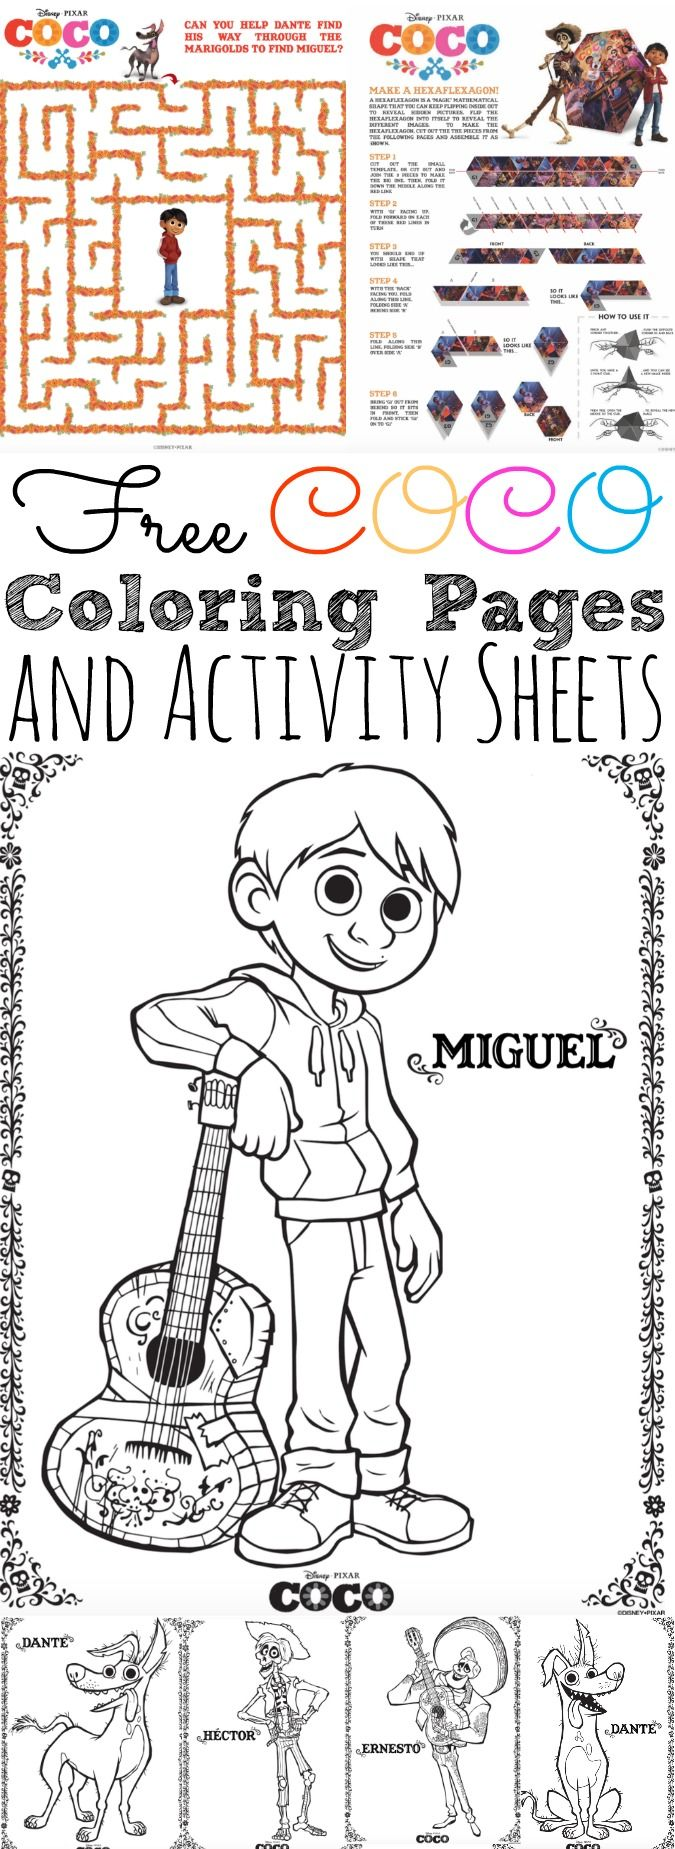 free disney pixar coco coloring pages and activity sheets get excited about disney pixar newest